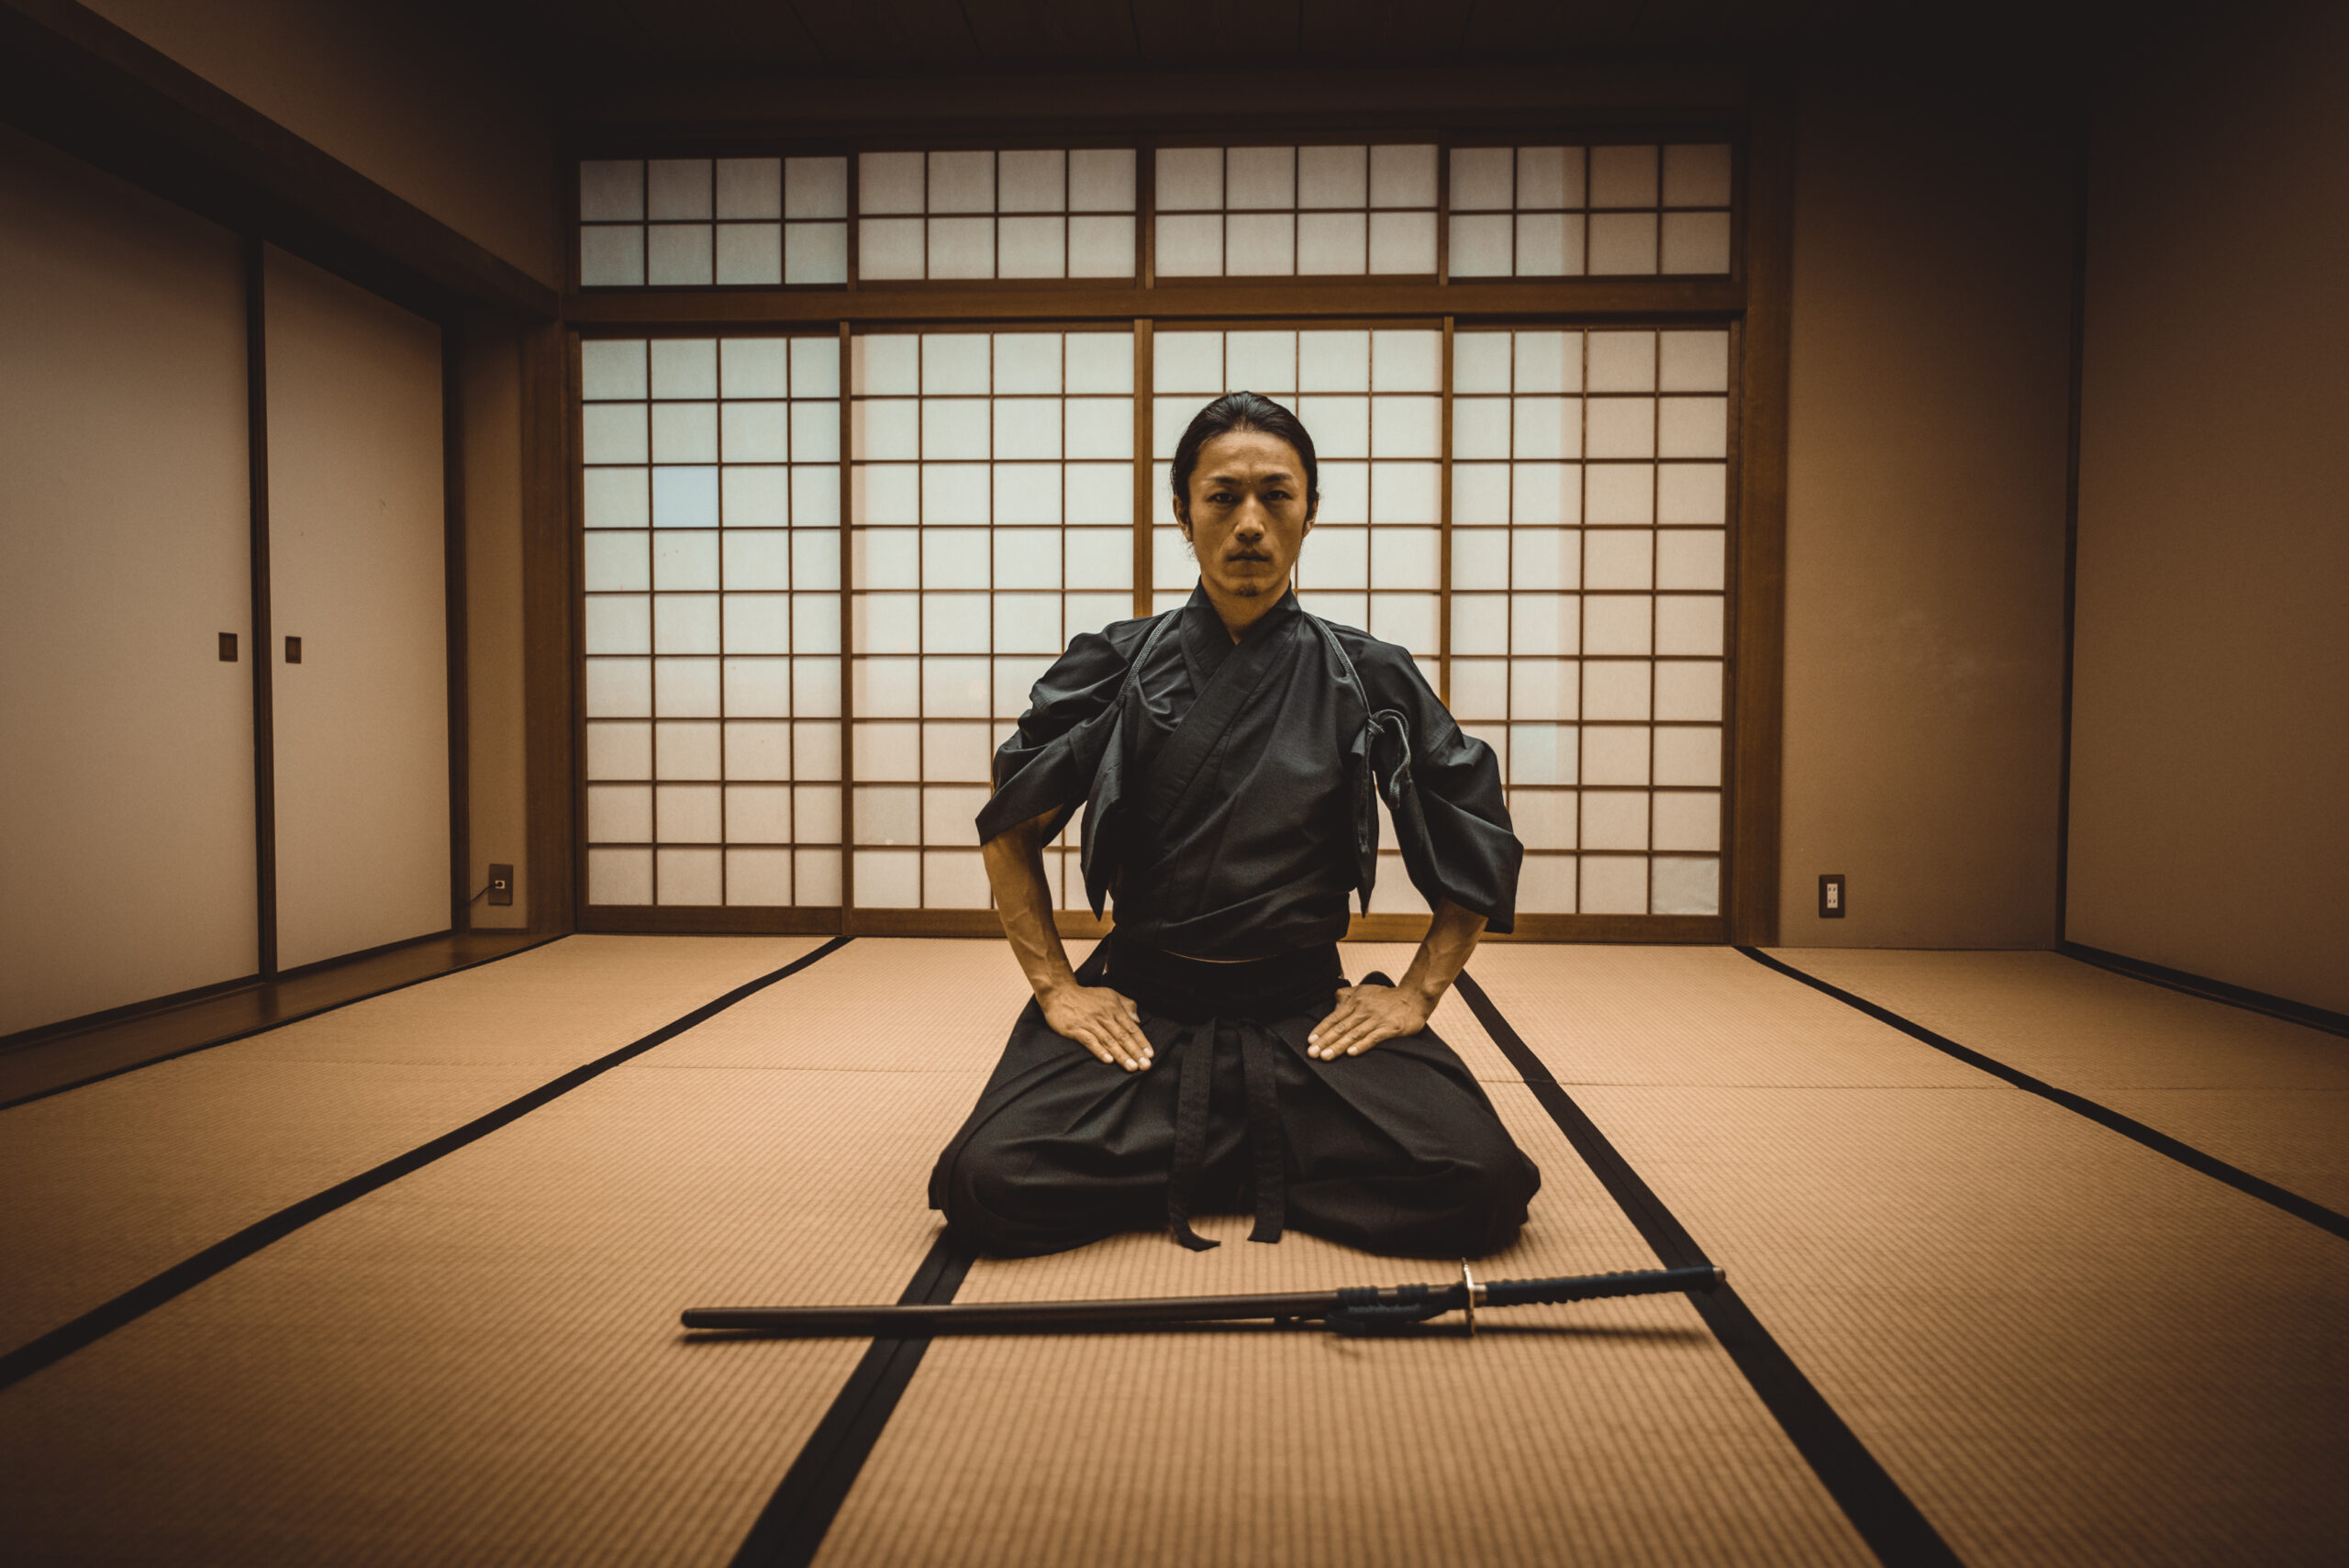 Samurai Strength: Using Mindfulness For Better Fitness, Focus, And Life